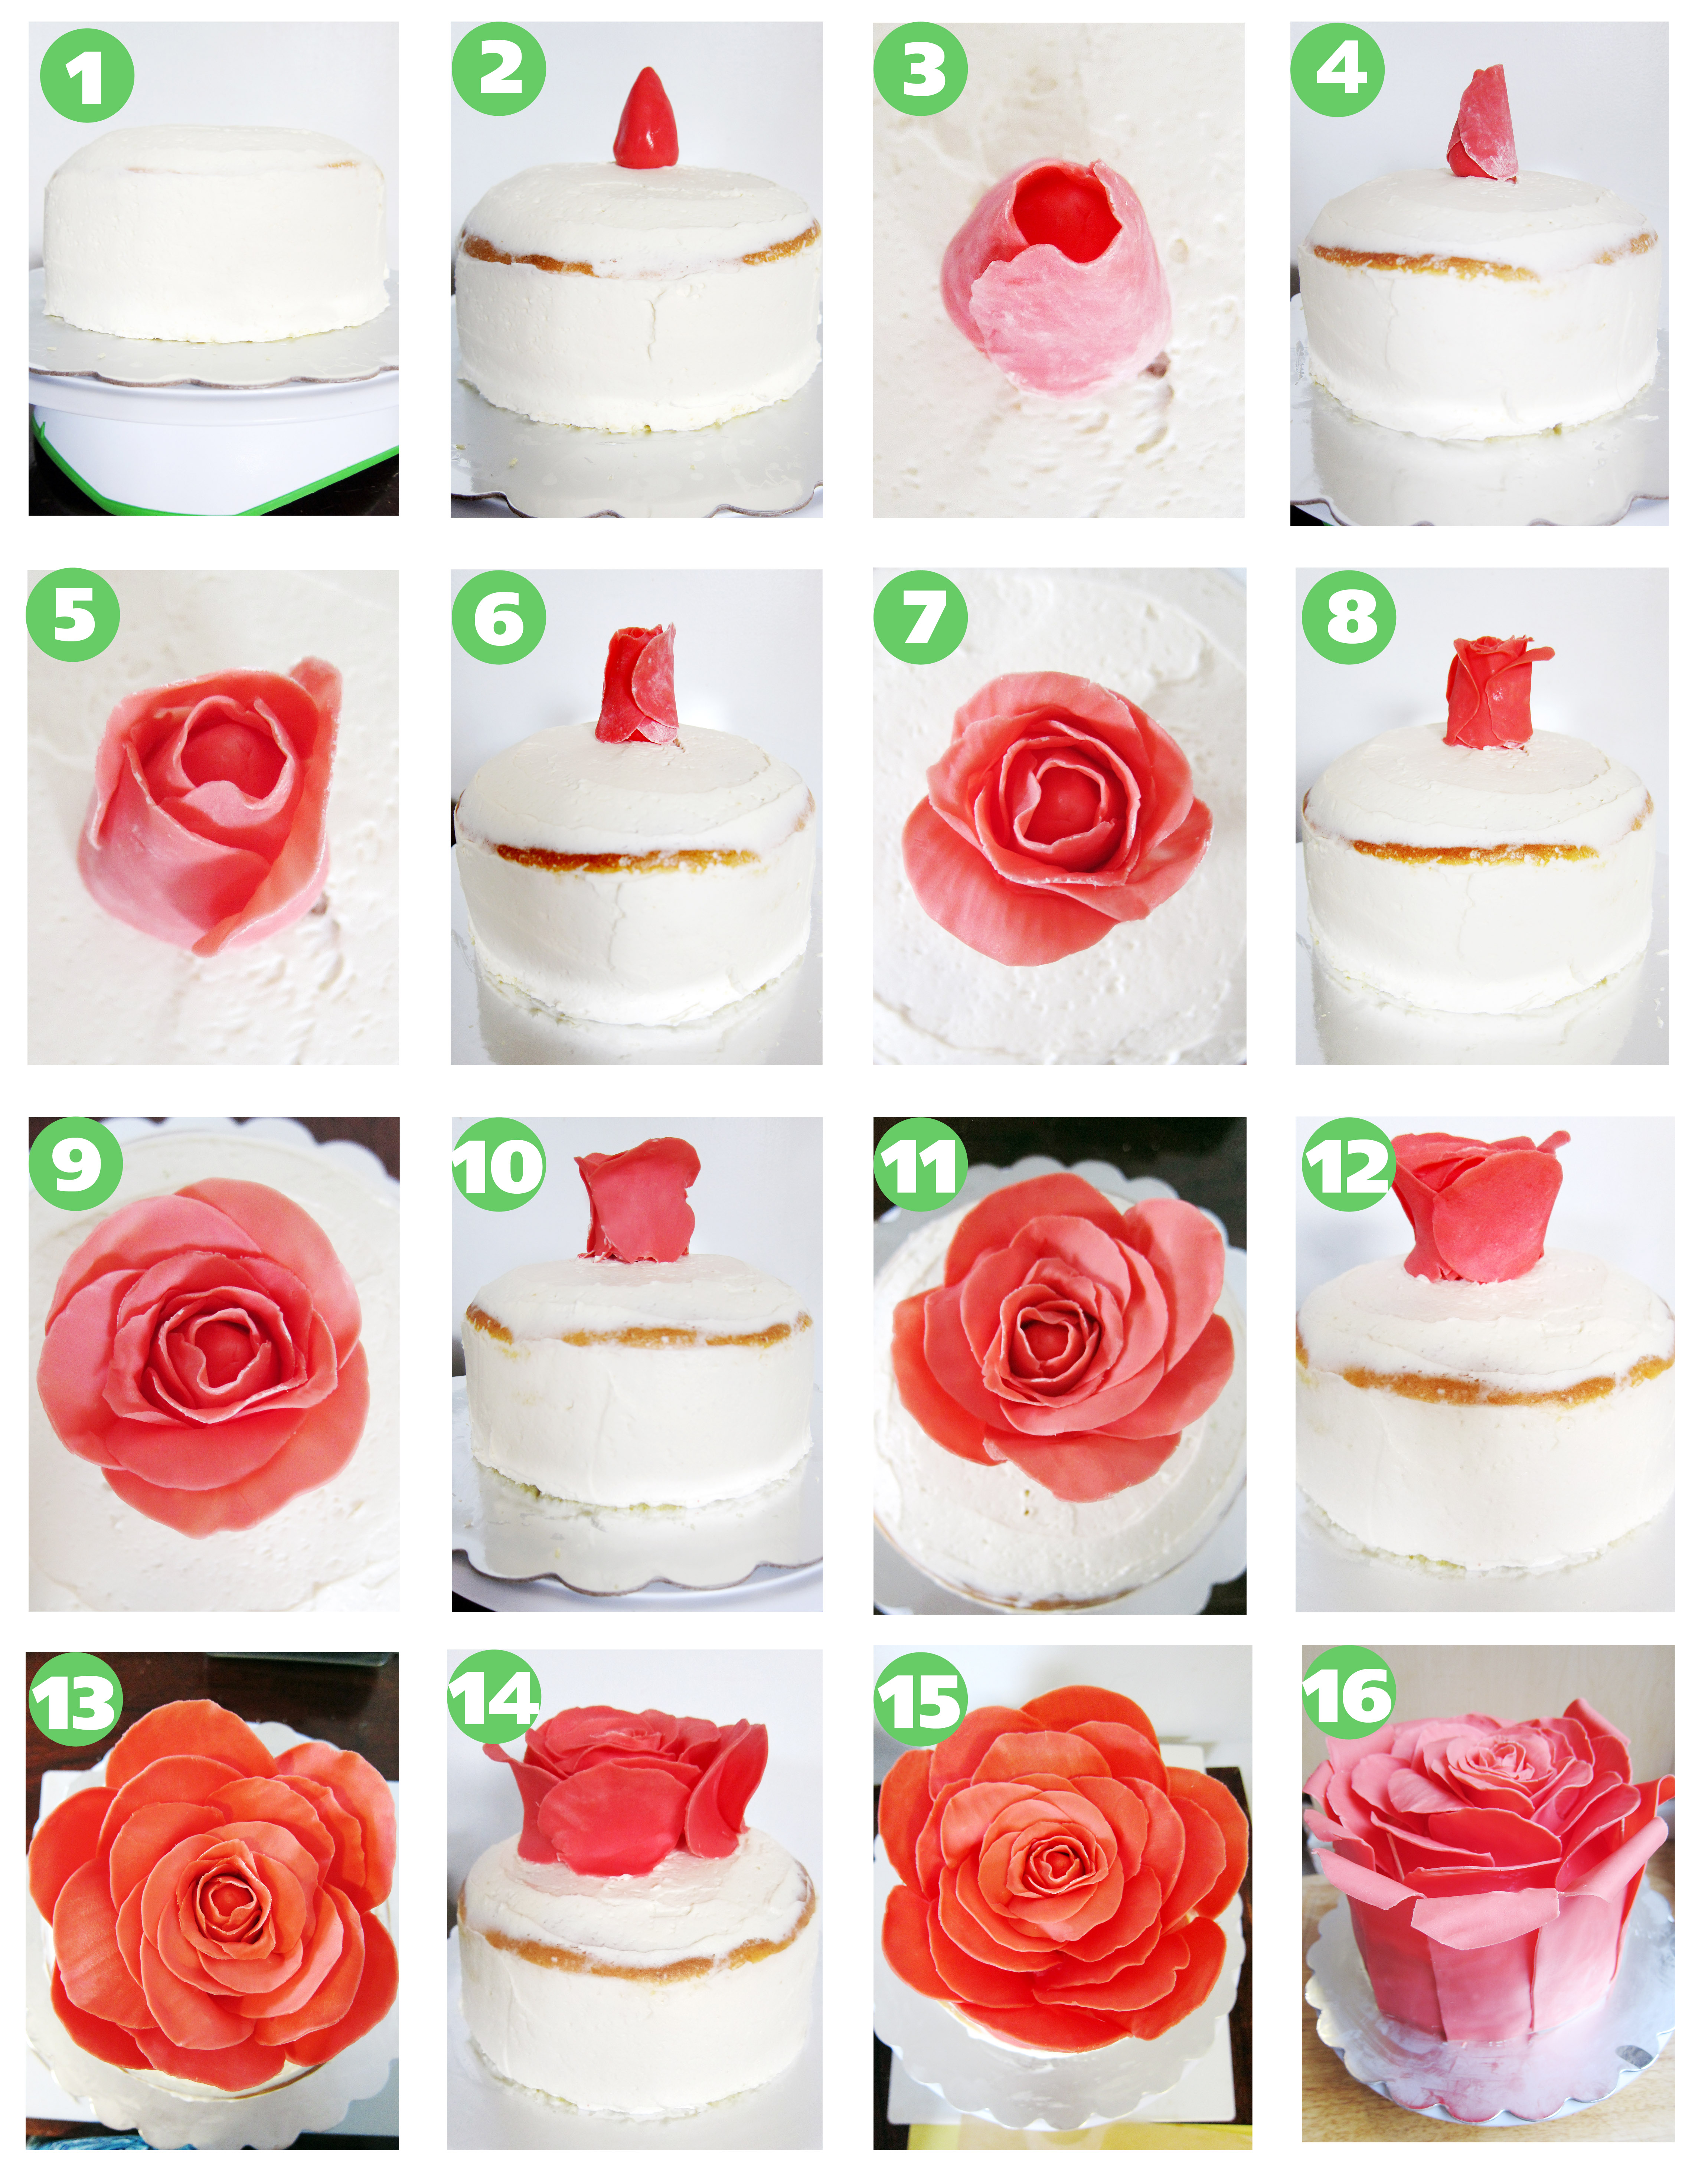 Rose Cake | The Busy Spatula